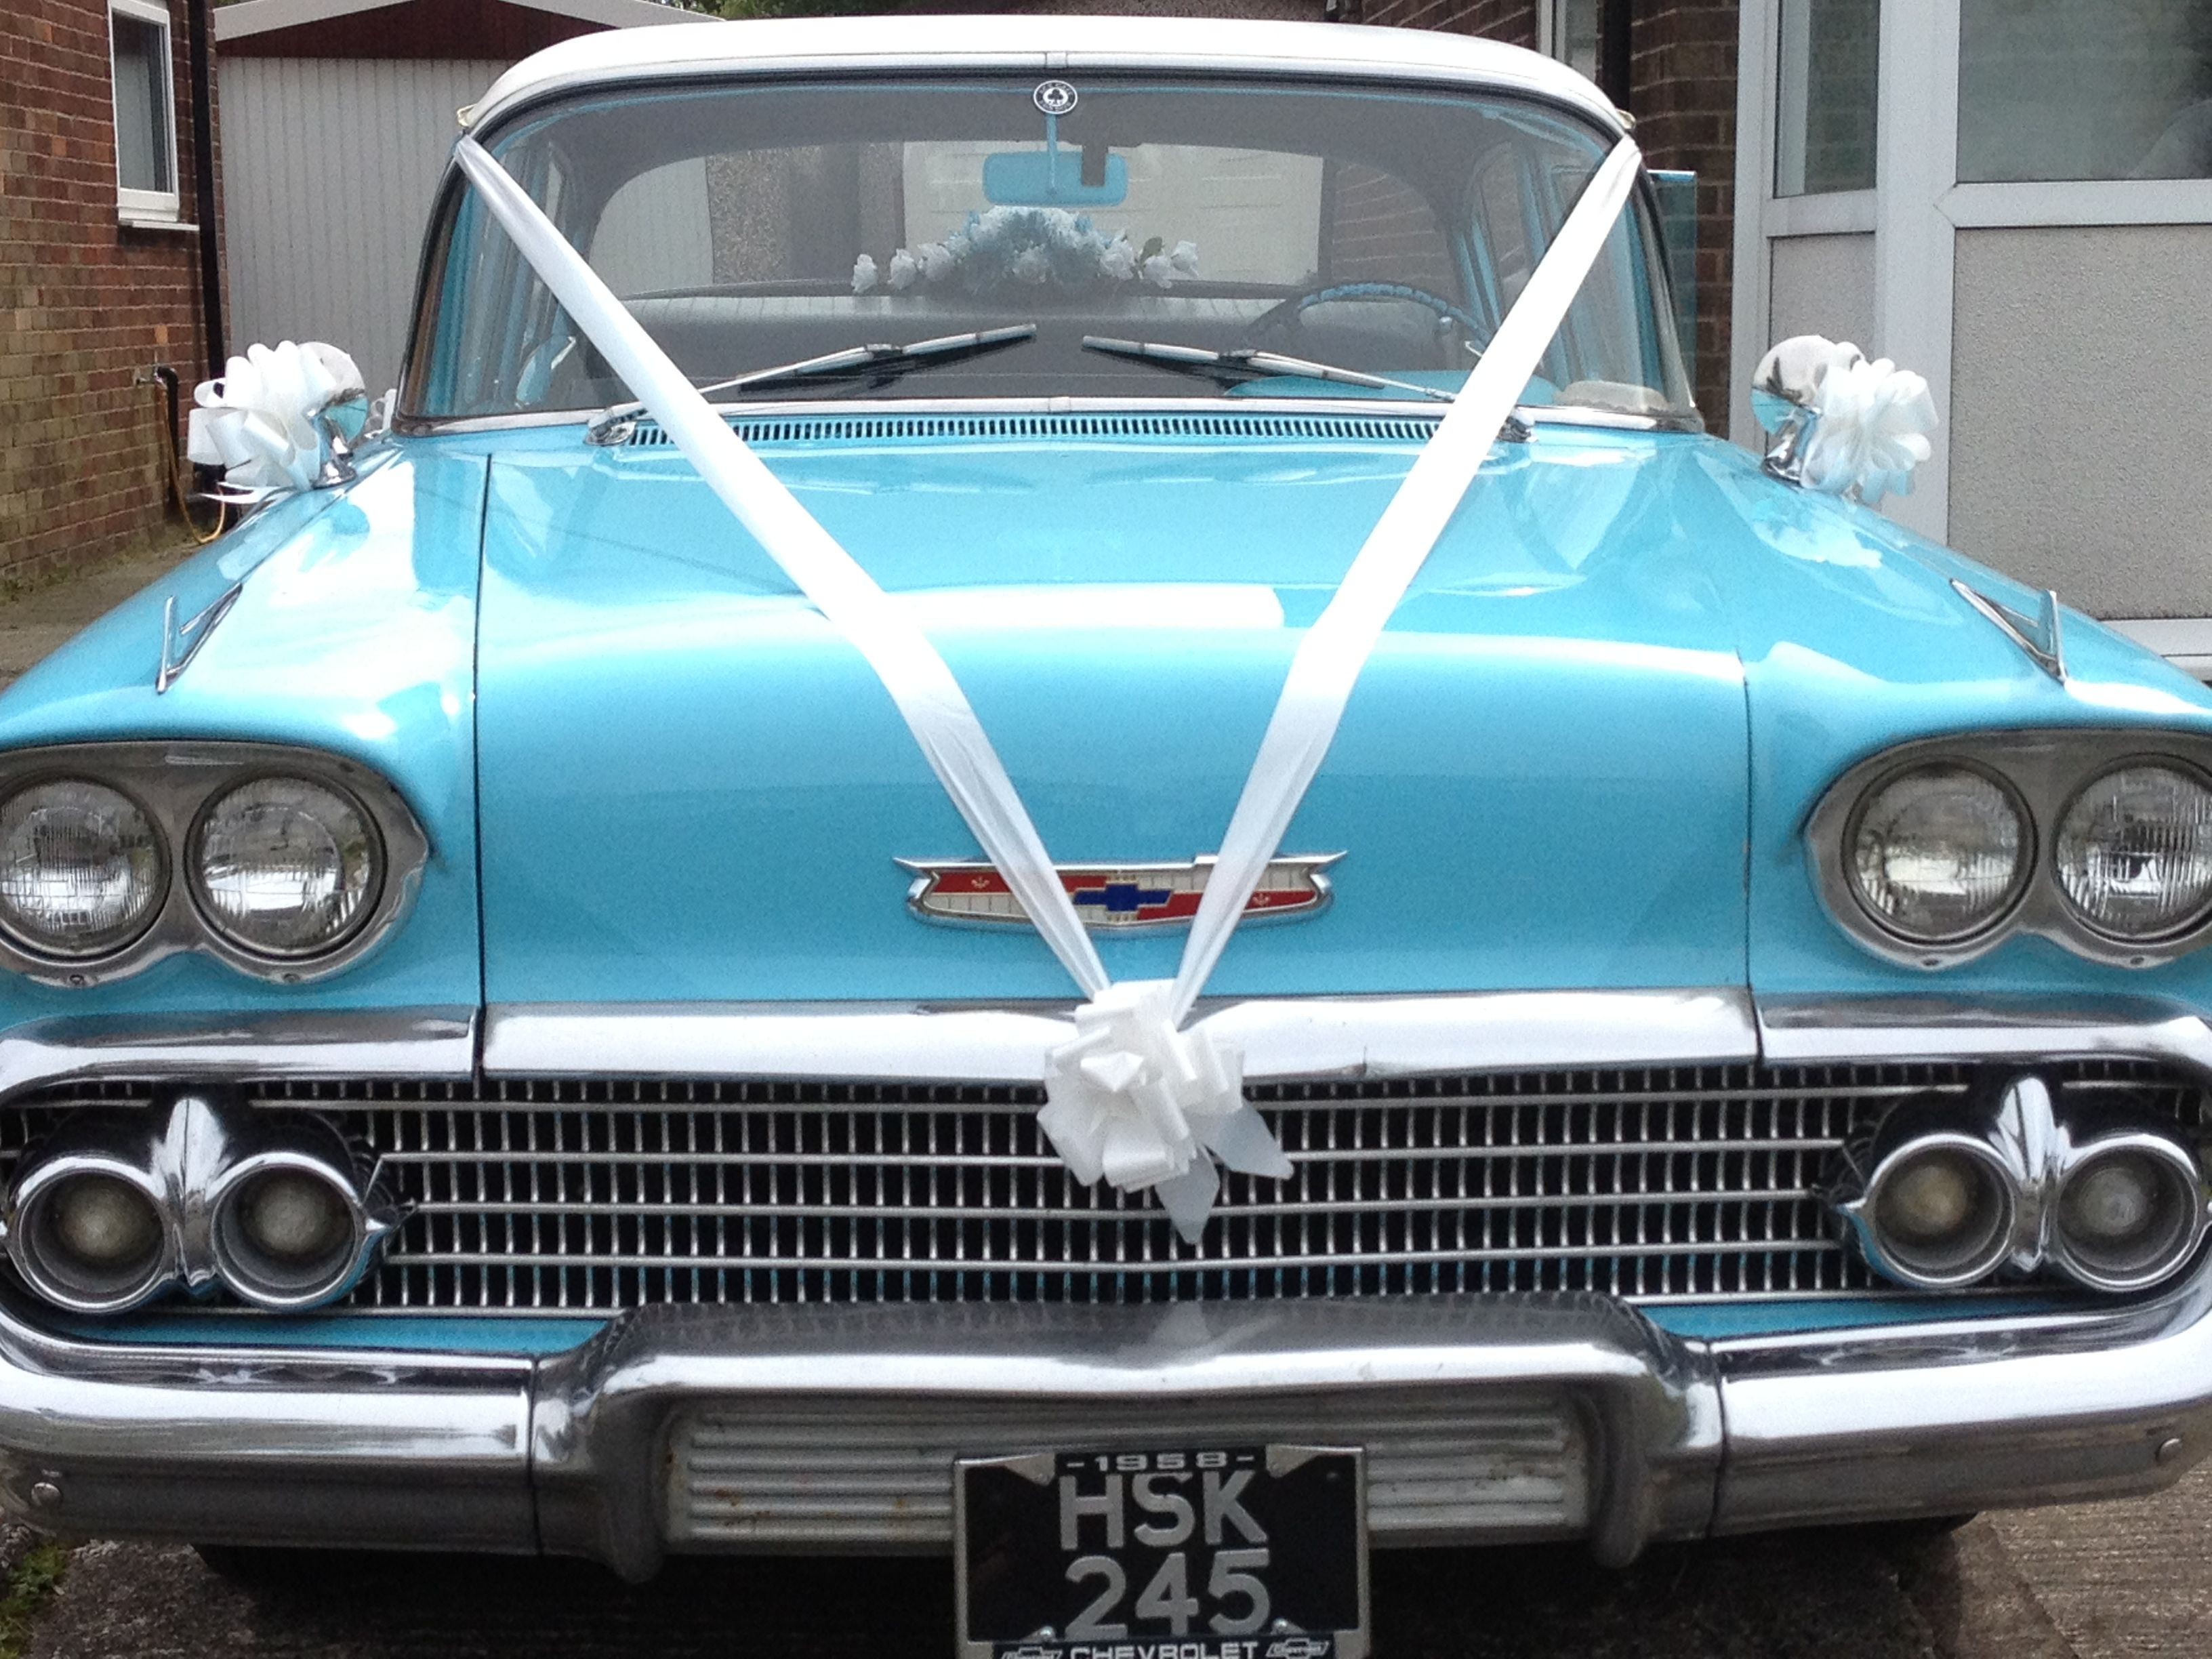 My 1958 Chevy Delray 235cu small block straight 6 My first ...